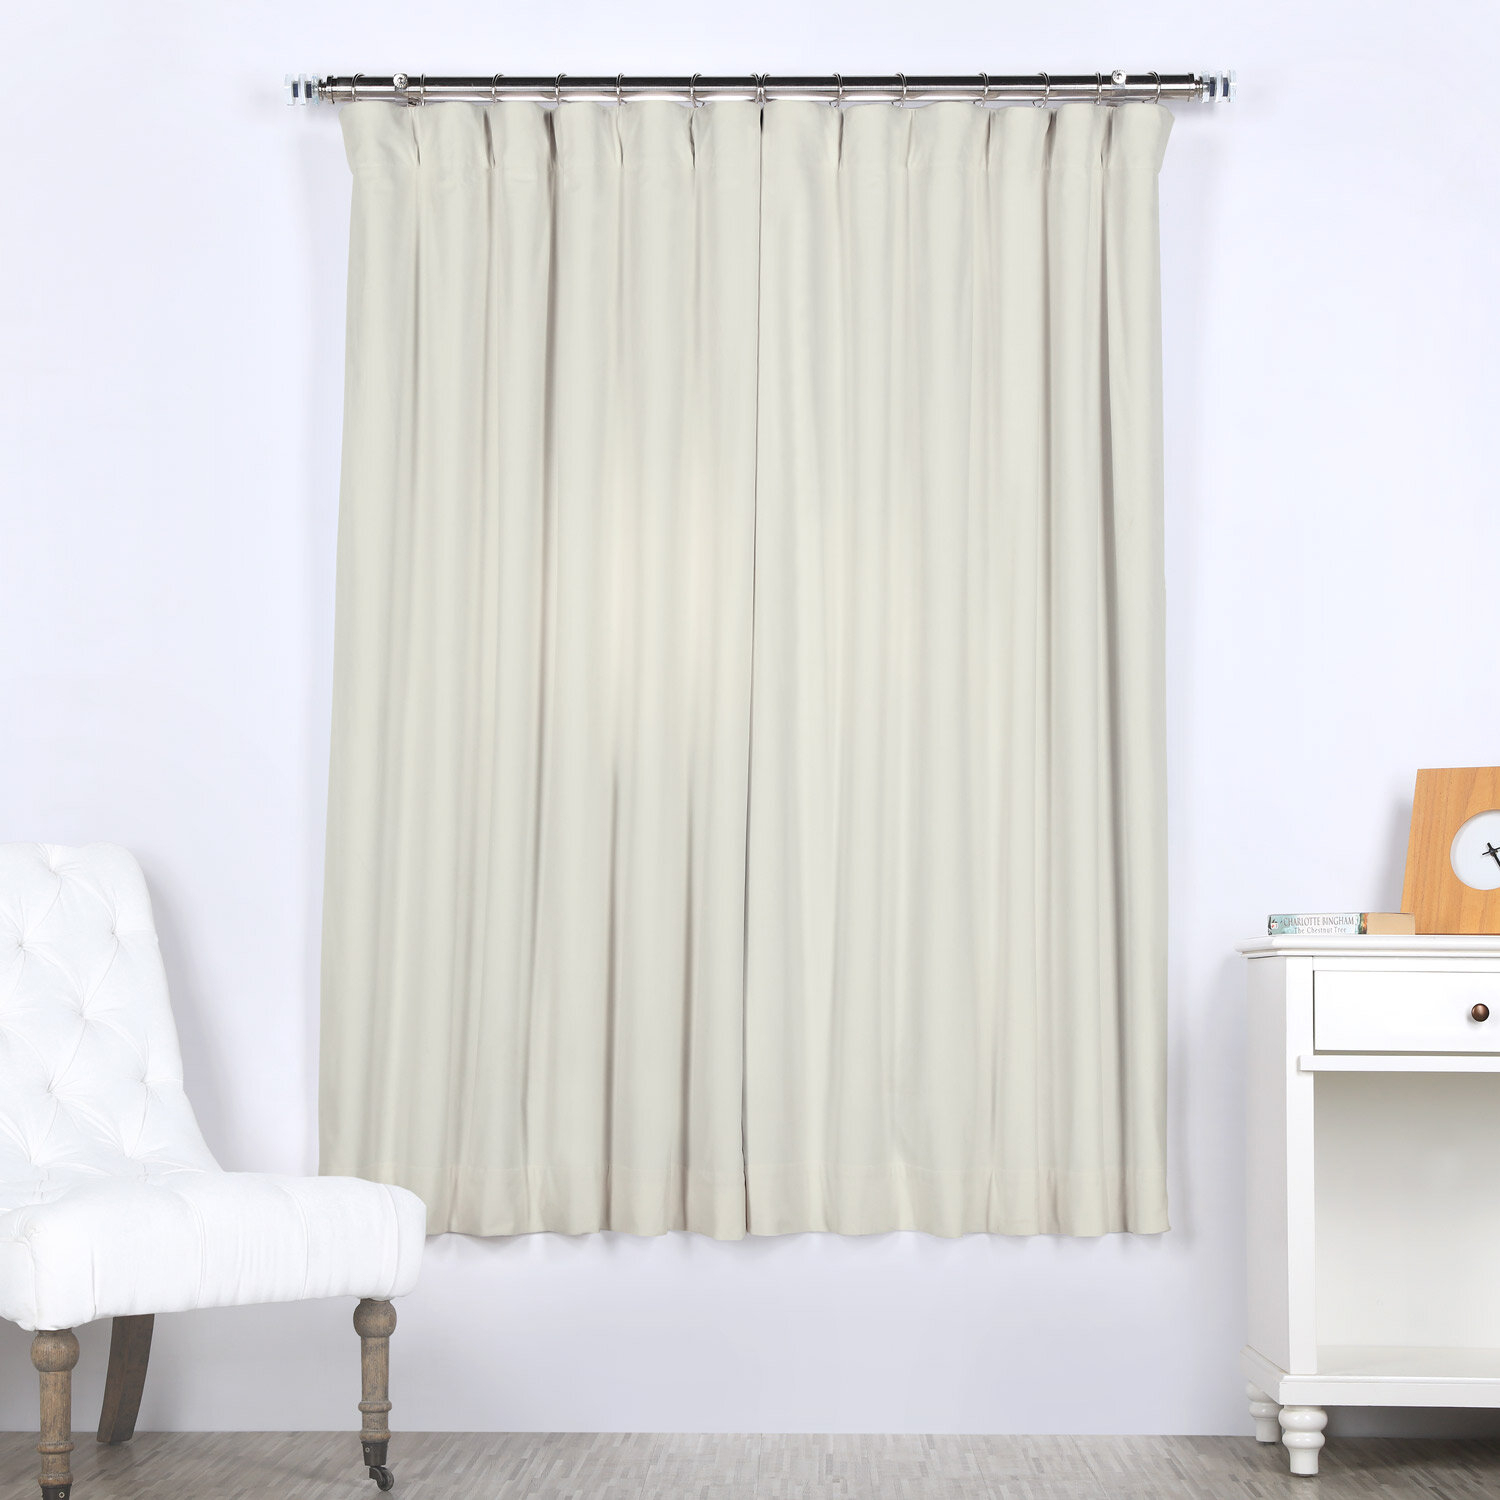 Off White Velvet Solid Blackout Thermal Rod Pocket Single Curtain Panel Pertaining To Signature Pinch Pleated Blackout Solid Velvet Curtain Panels (View 24 of 36)